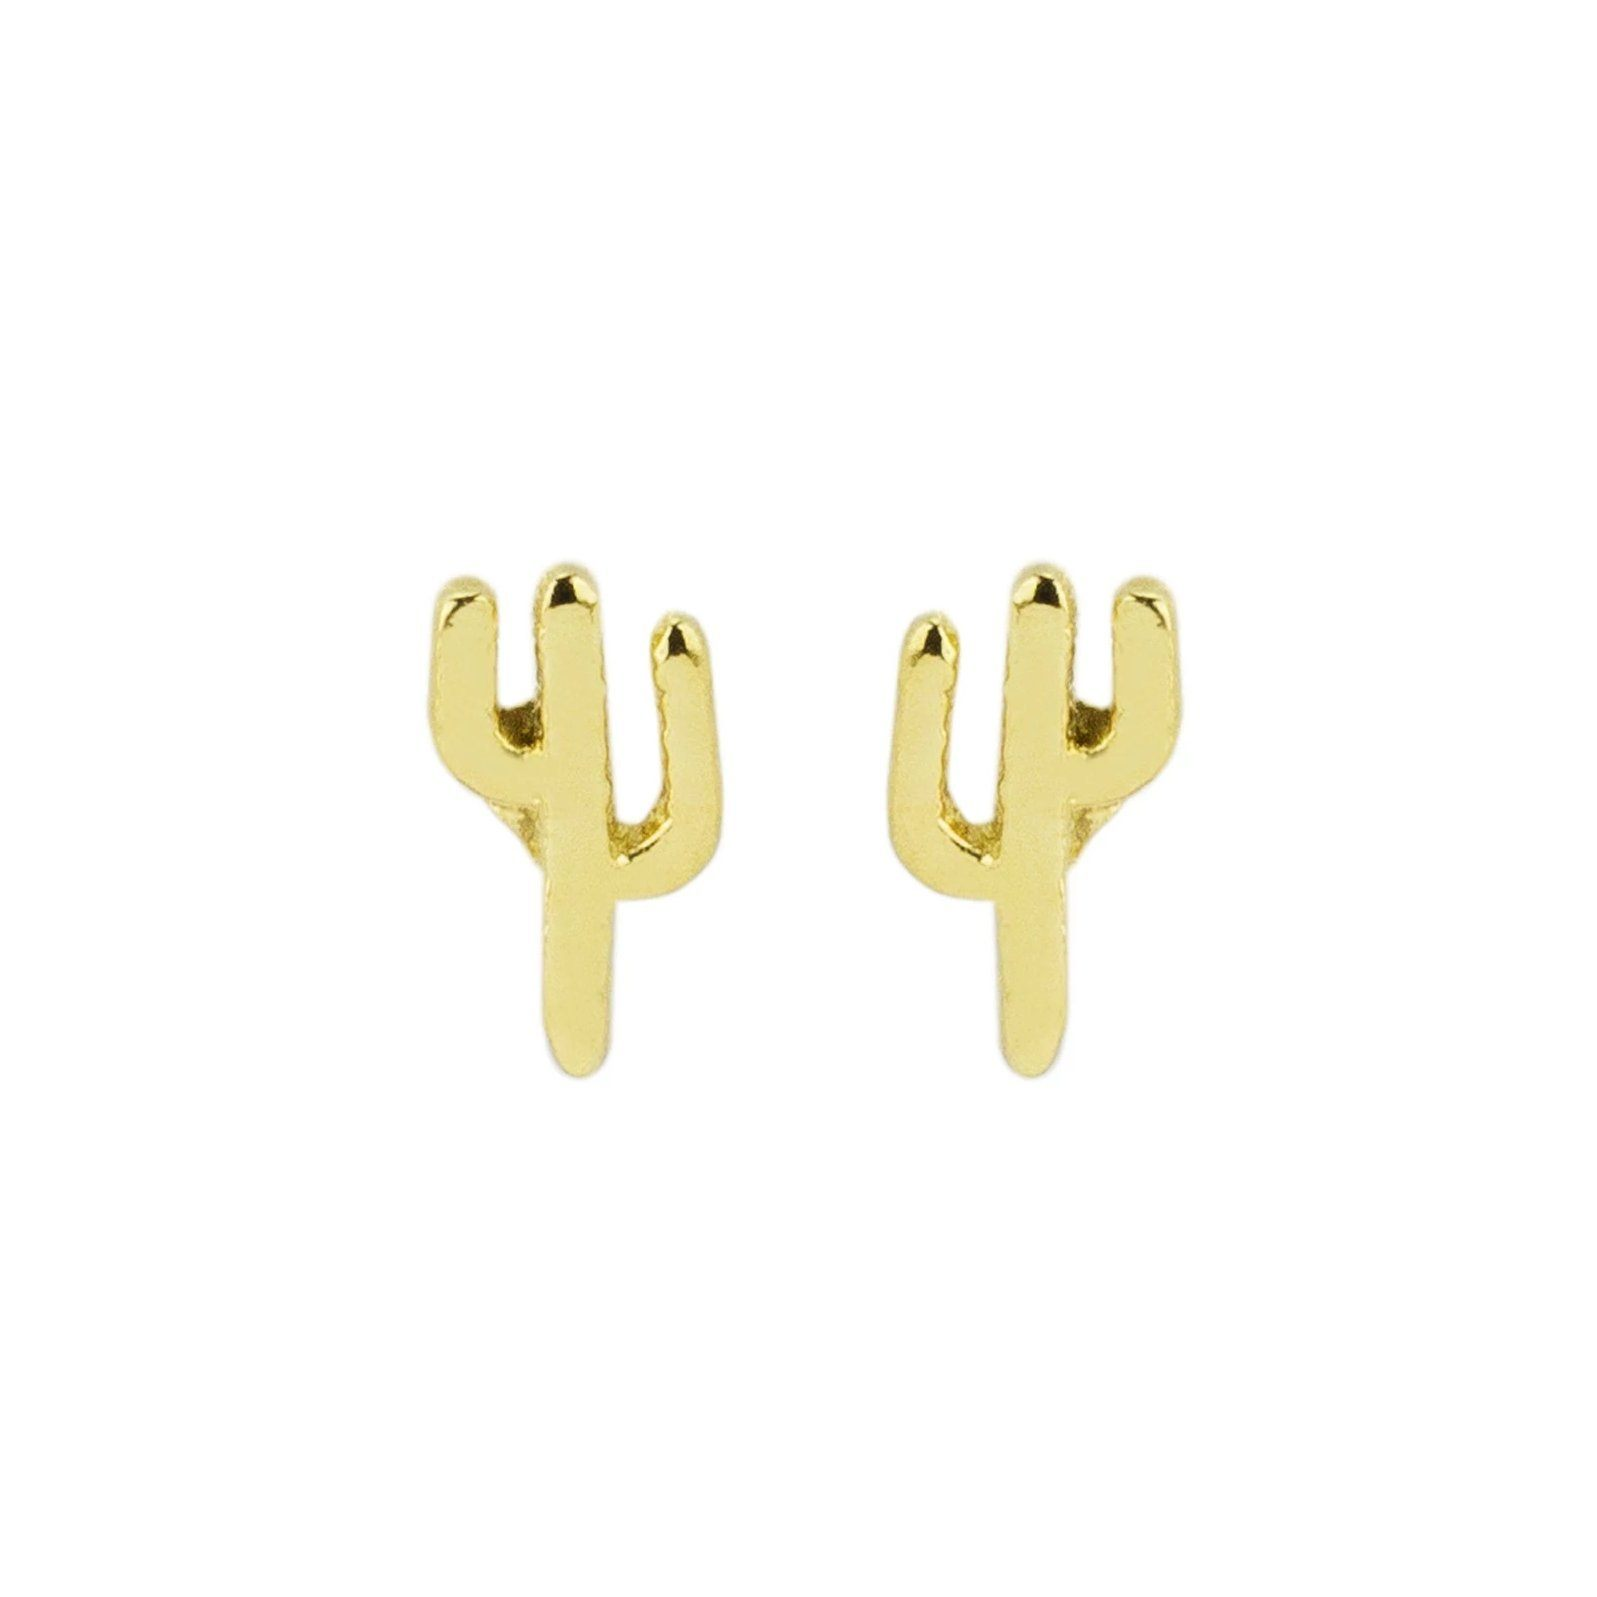 Up close image of a pair of gold Cactus Studs against a white background.